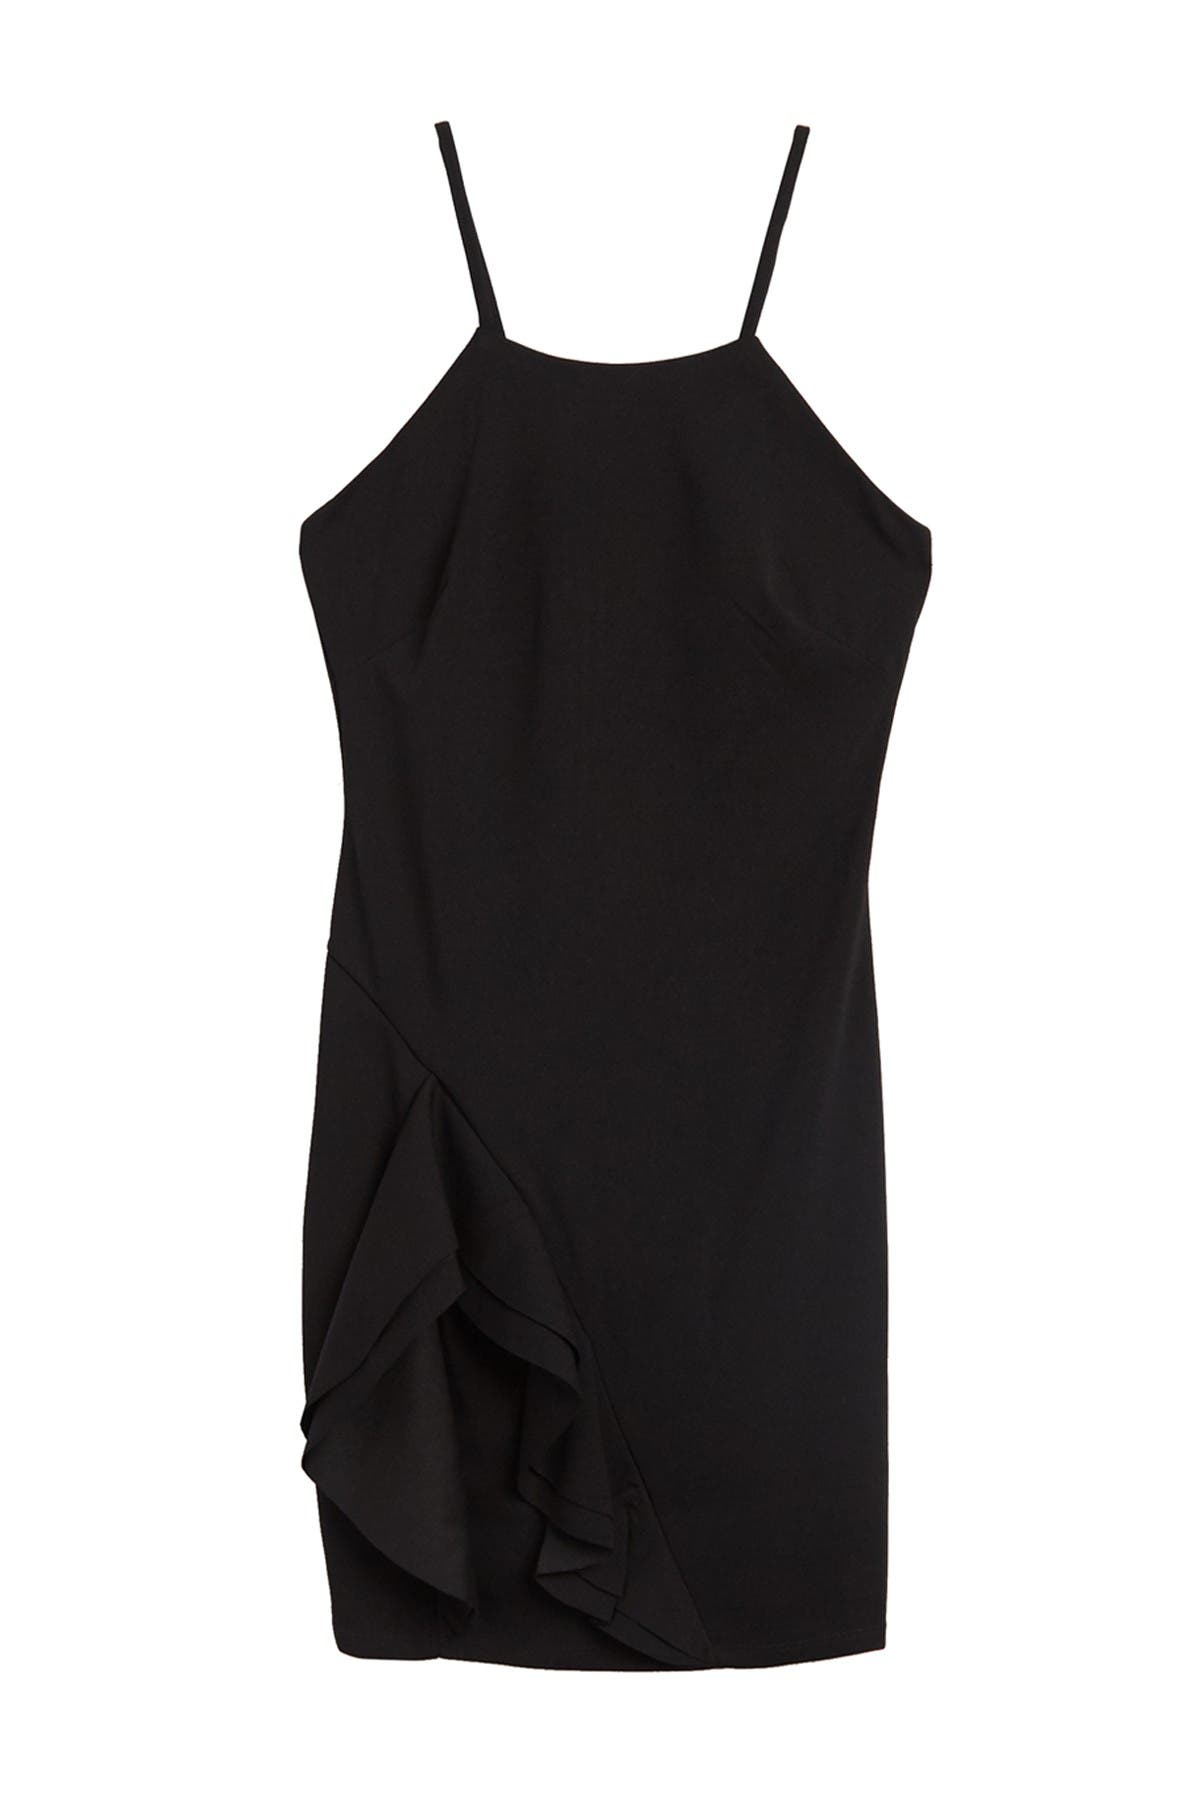 Image of bebe Halter Neck Crepe Sheath Dress